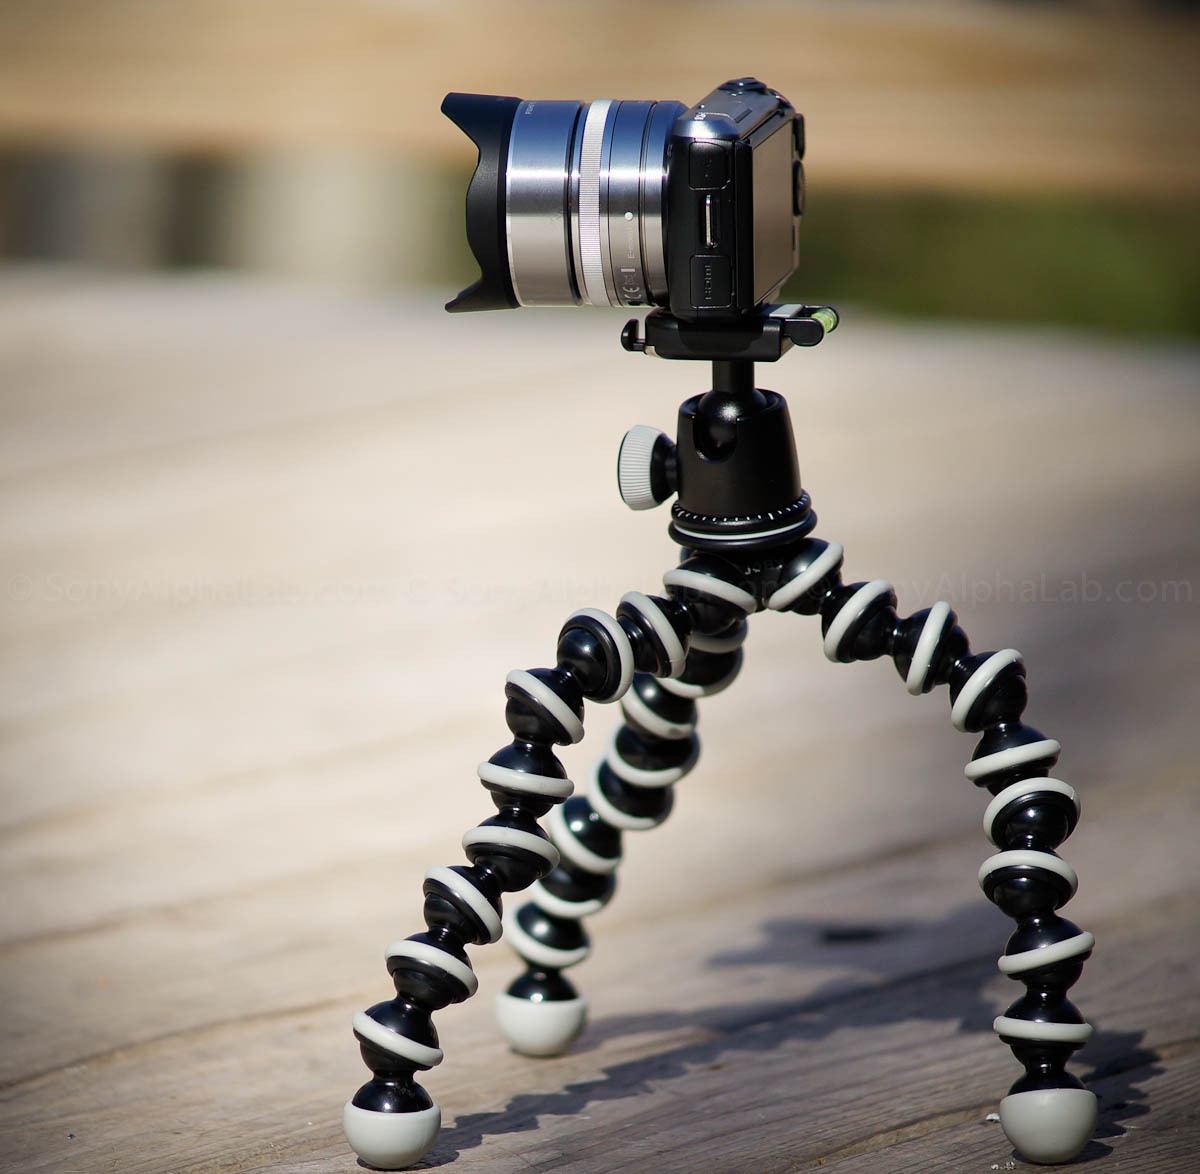 Joby Gorrillapod SLR-Zoom w/ Ballhead and Nex Camera and Lens